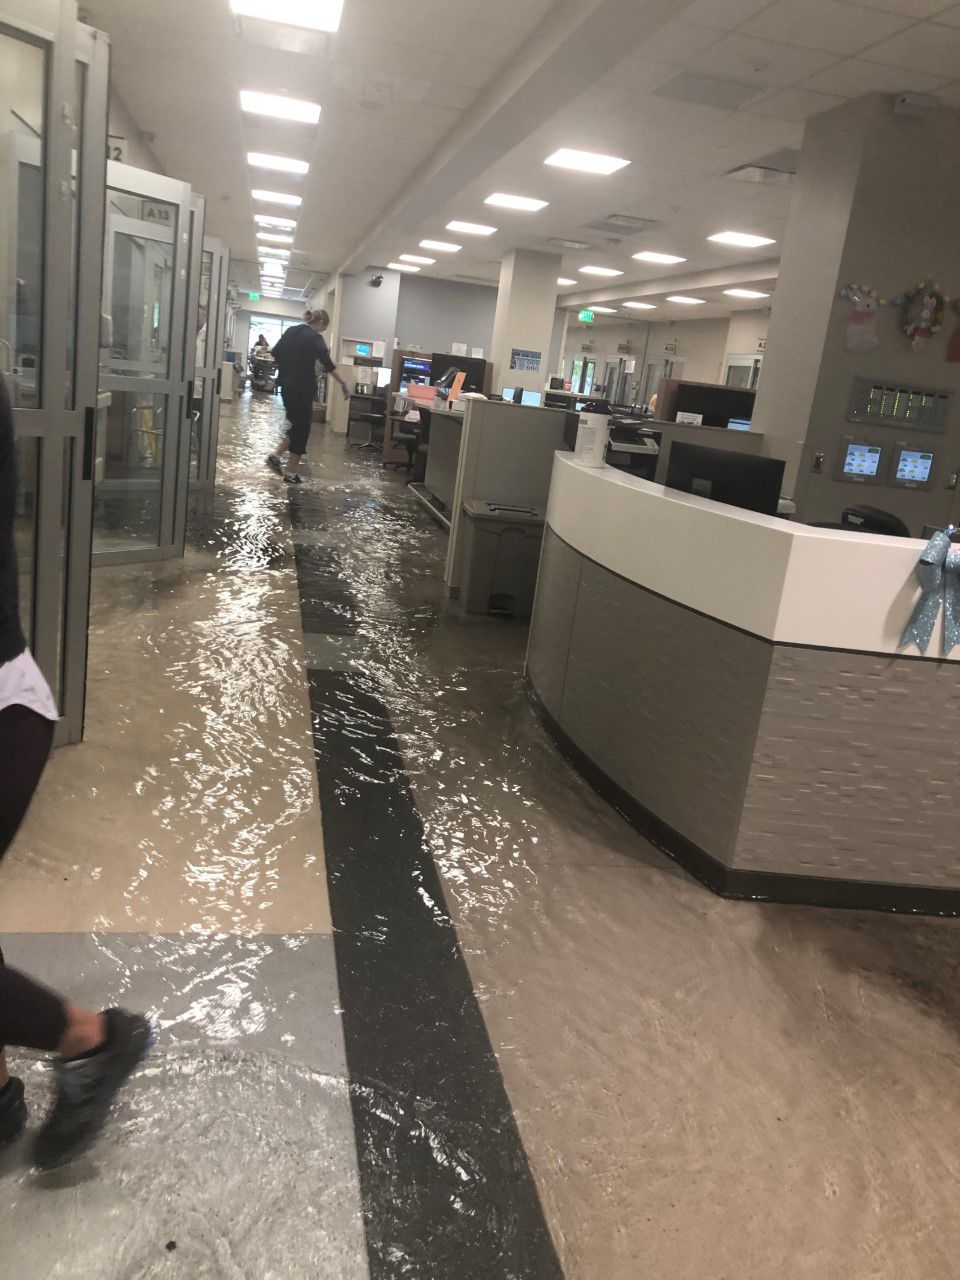 FLOODING AT BANNER